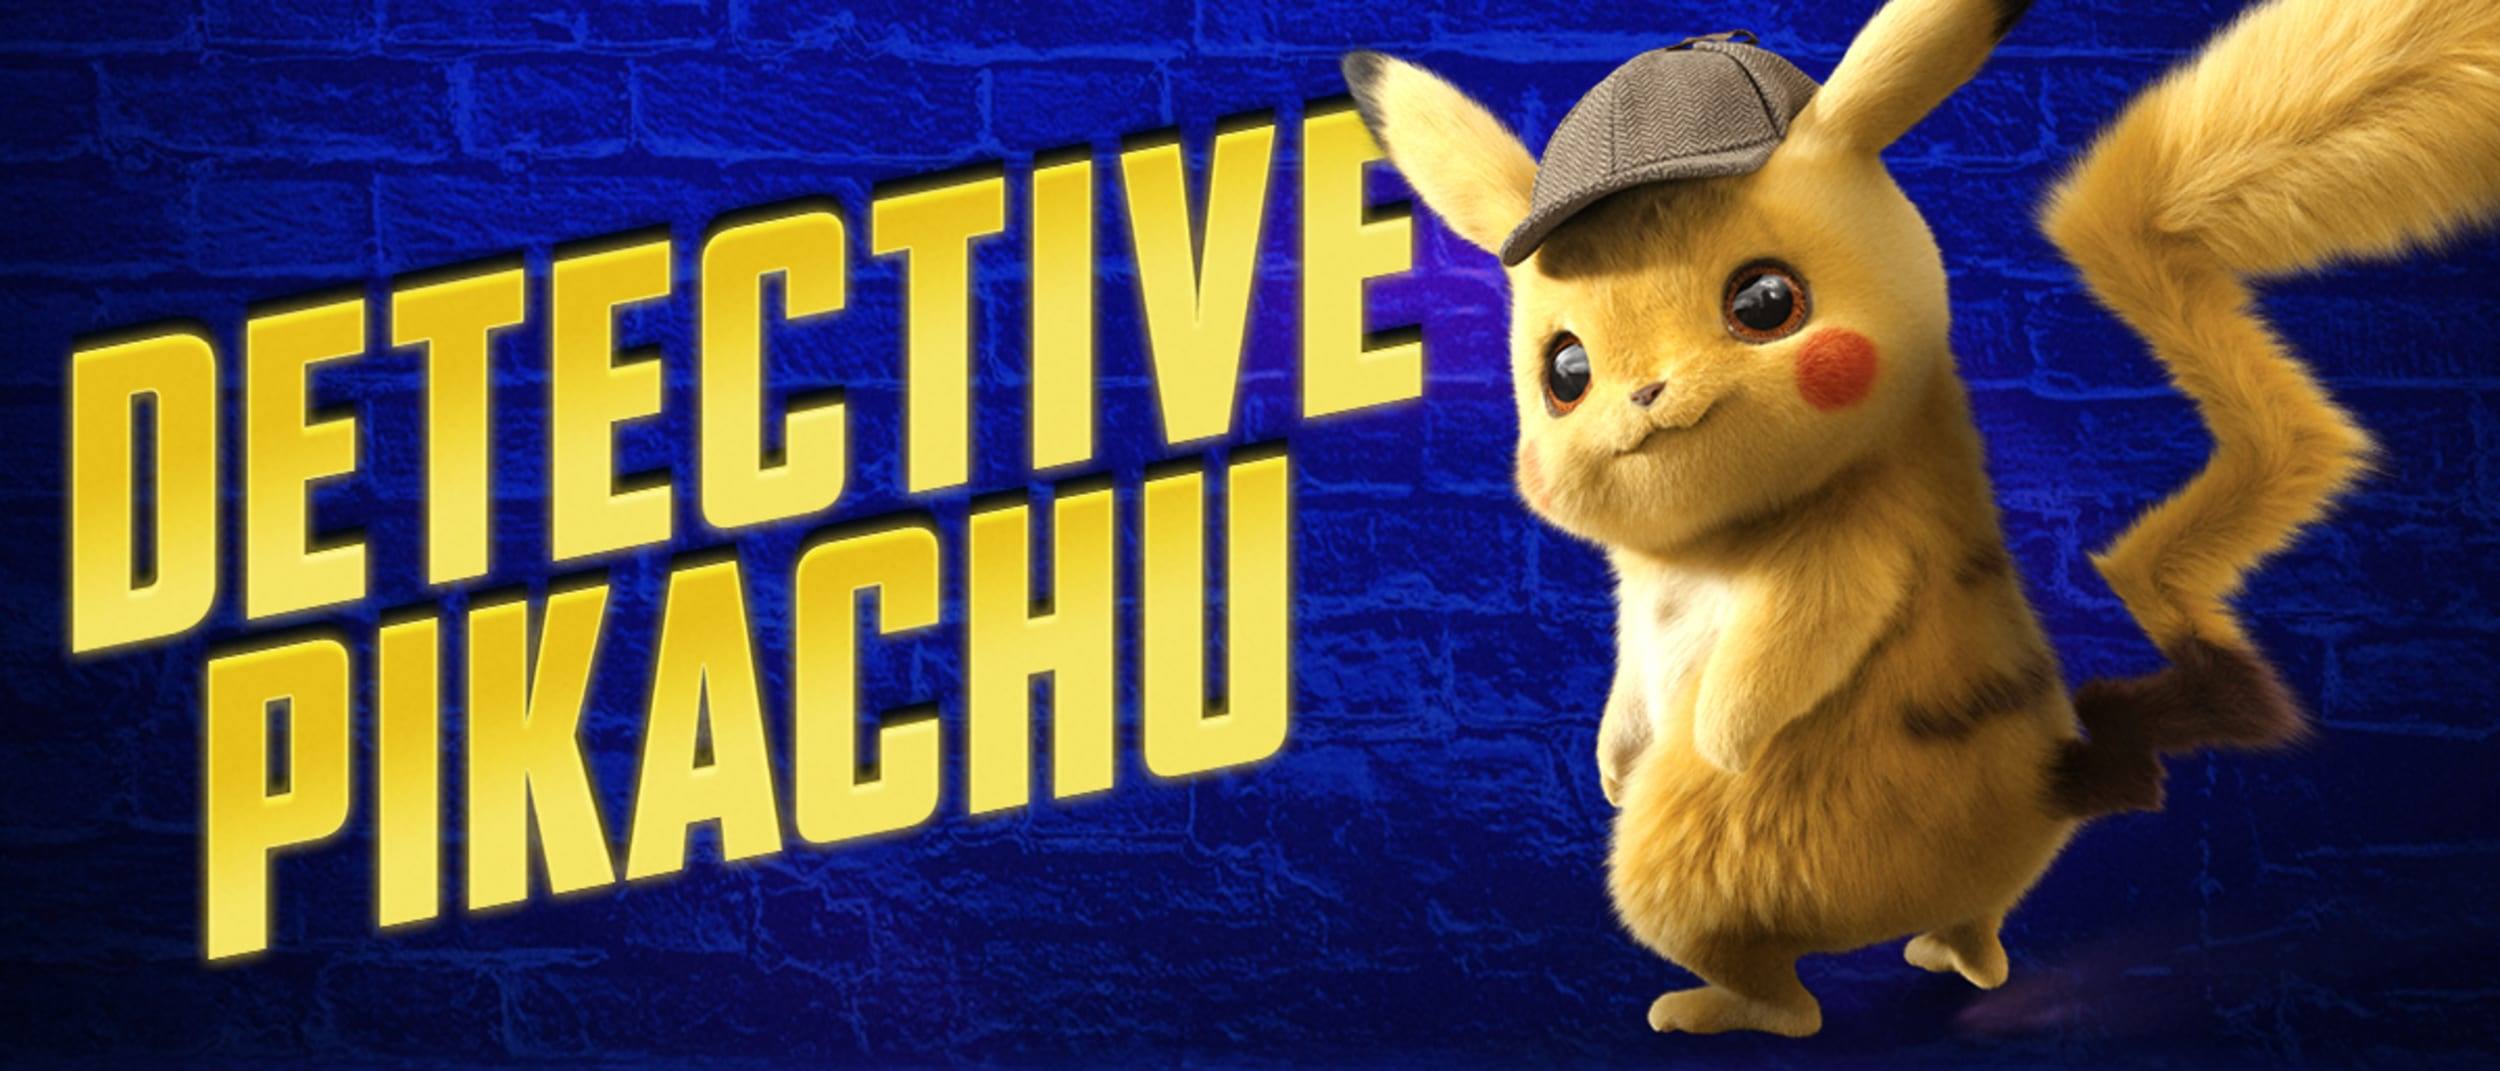 POKEMON Detective Pikachu meet and greet